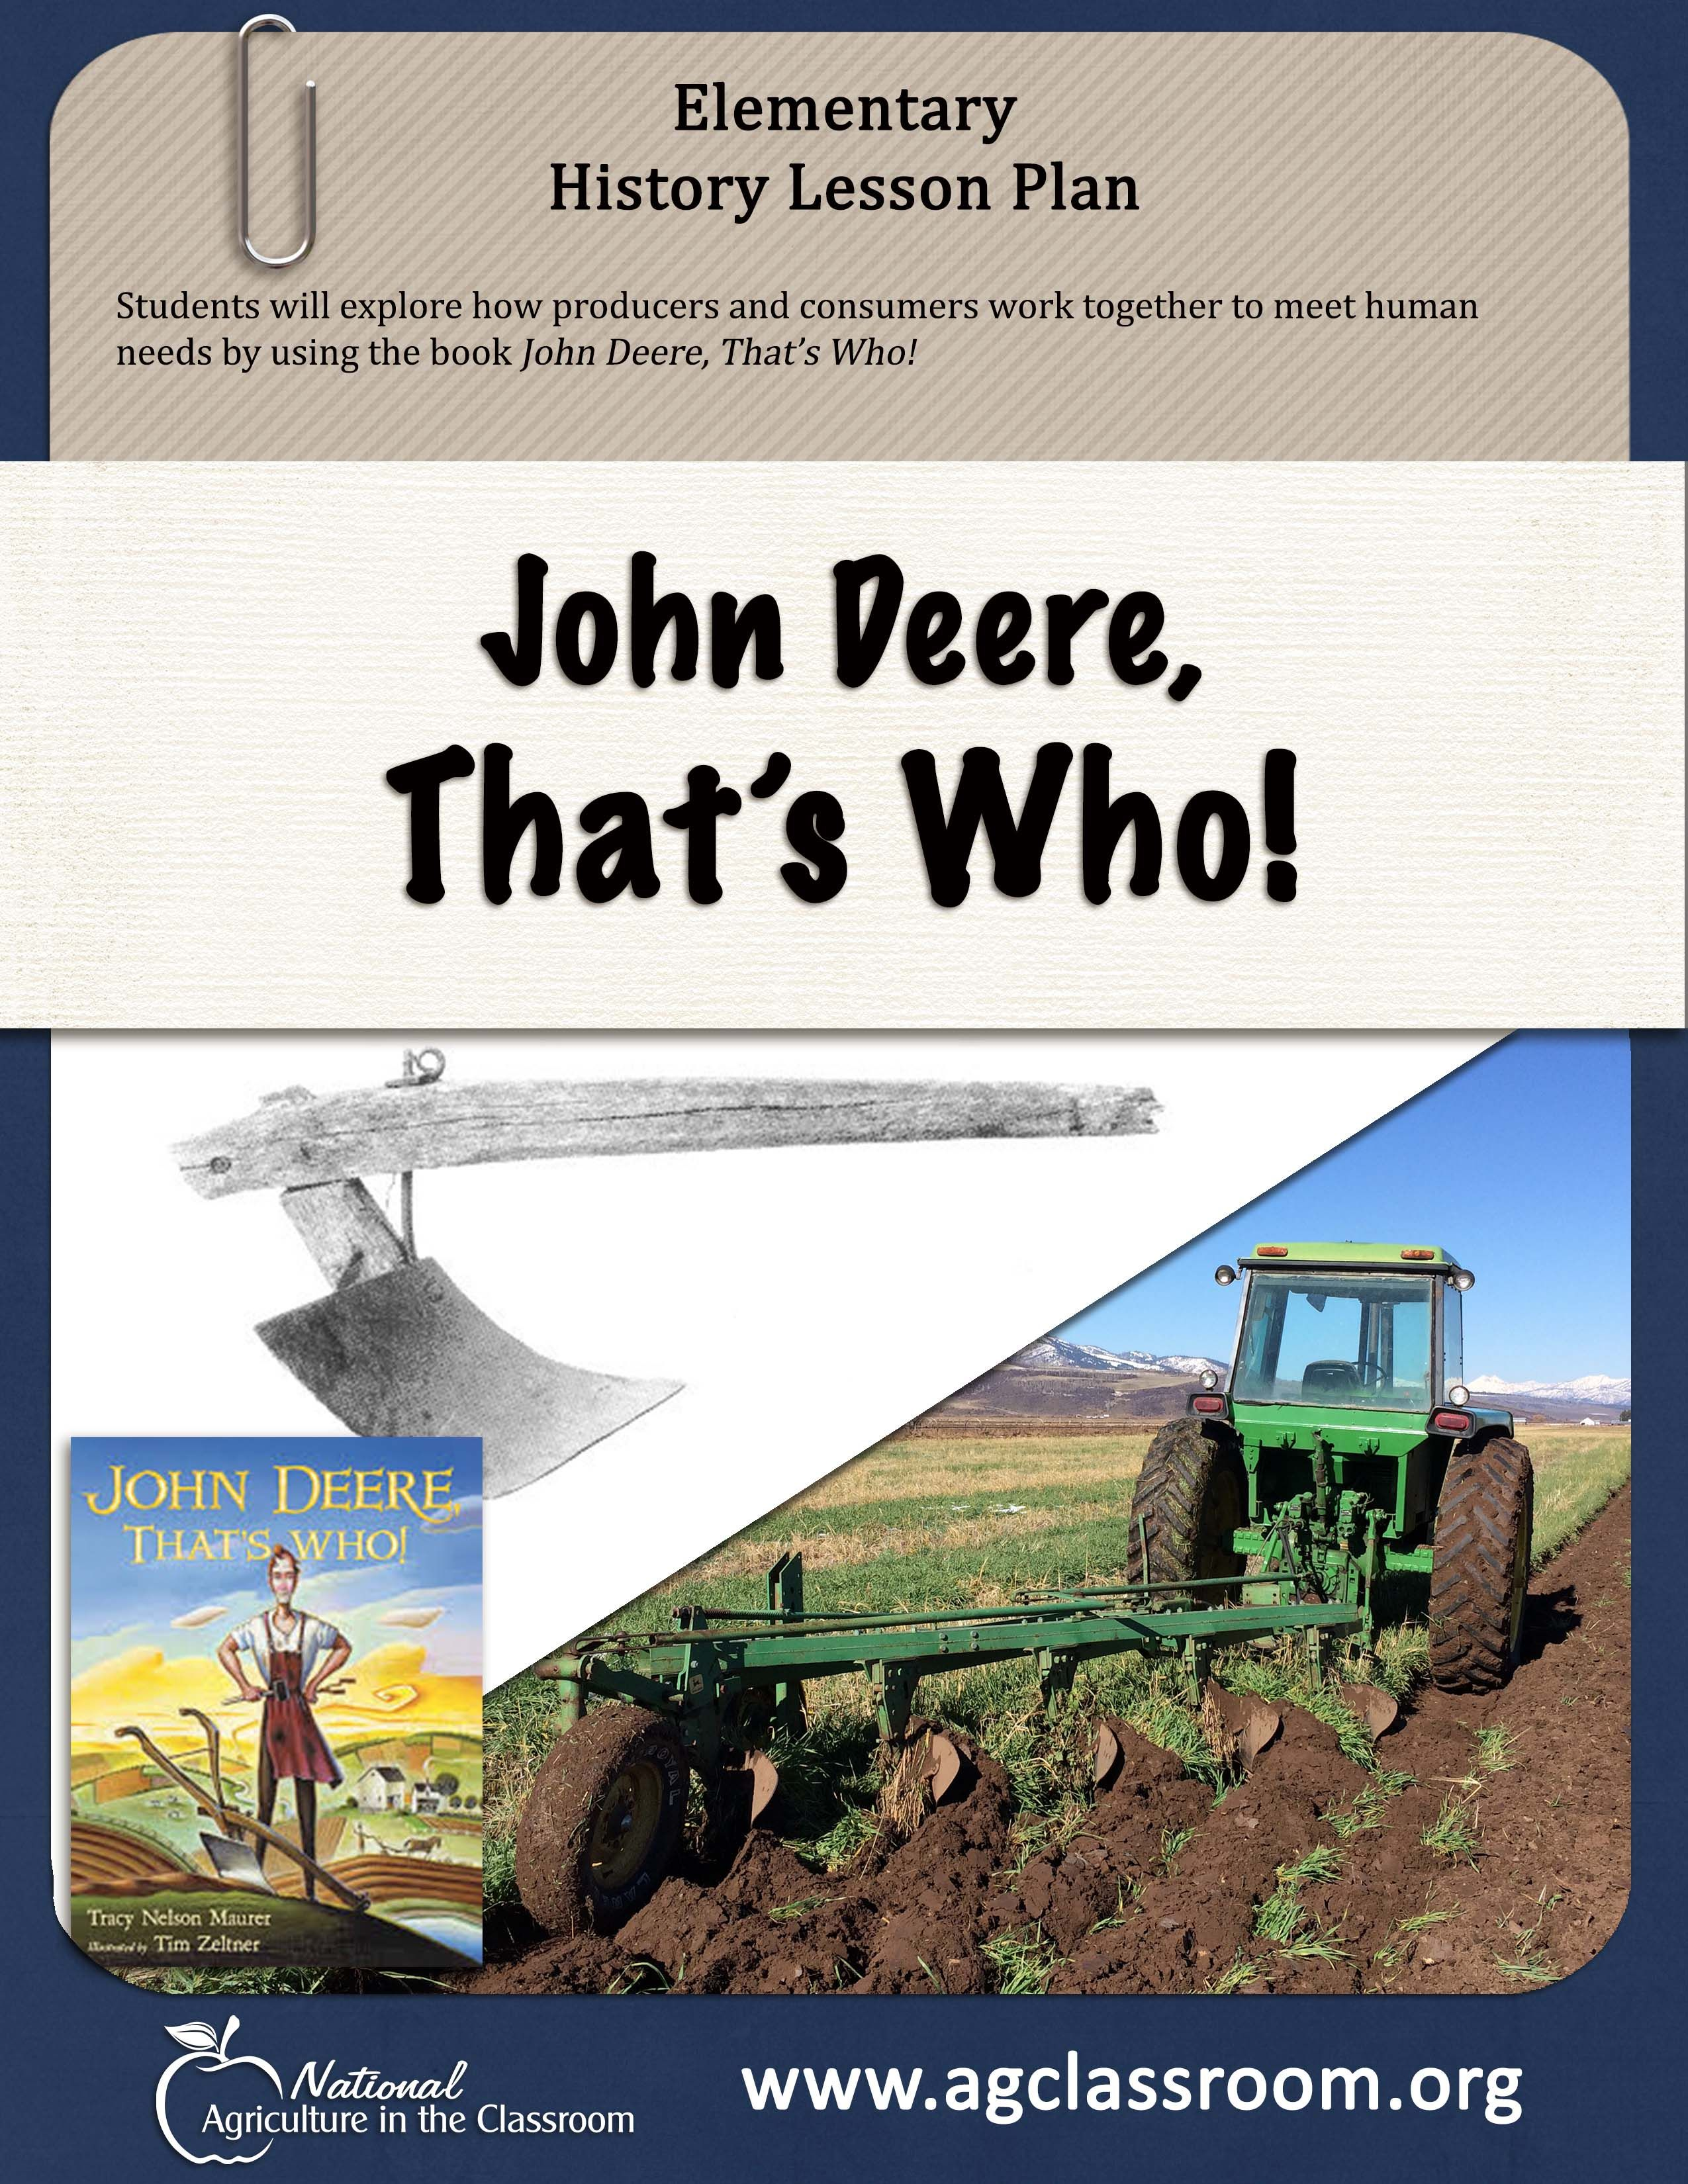 small resolution of elementary lesson plan teaching about producers and consumers using john deere a blacksmith who invented the the first steel plow as an example